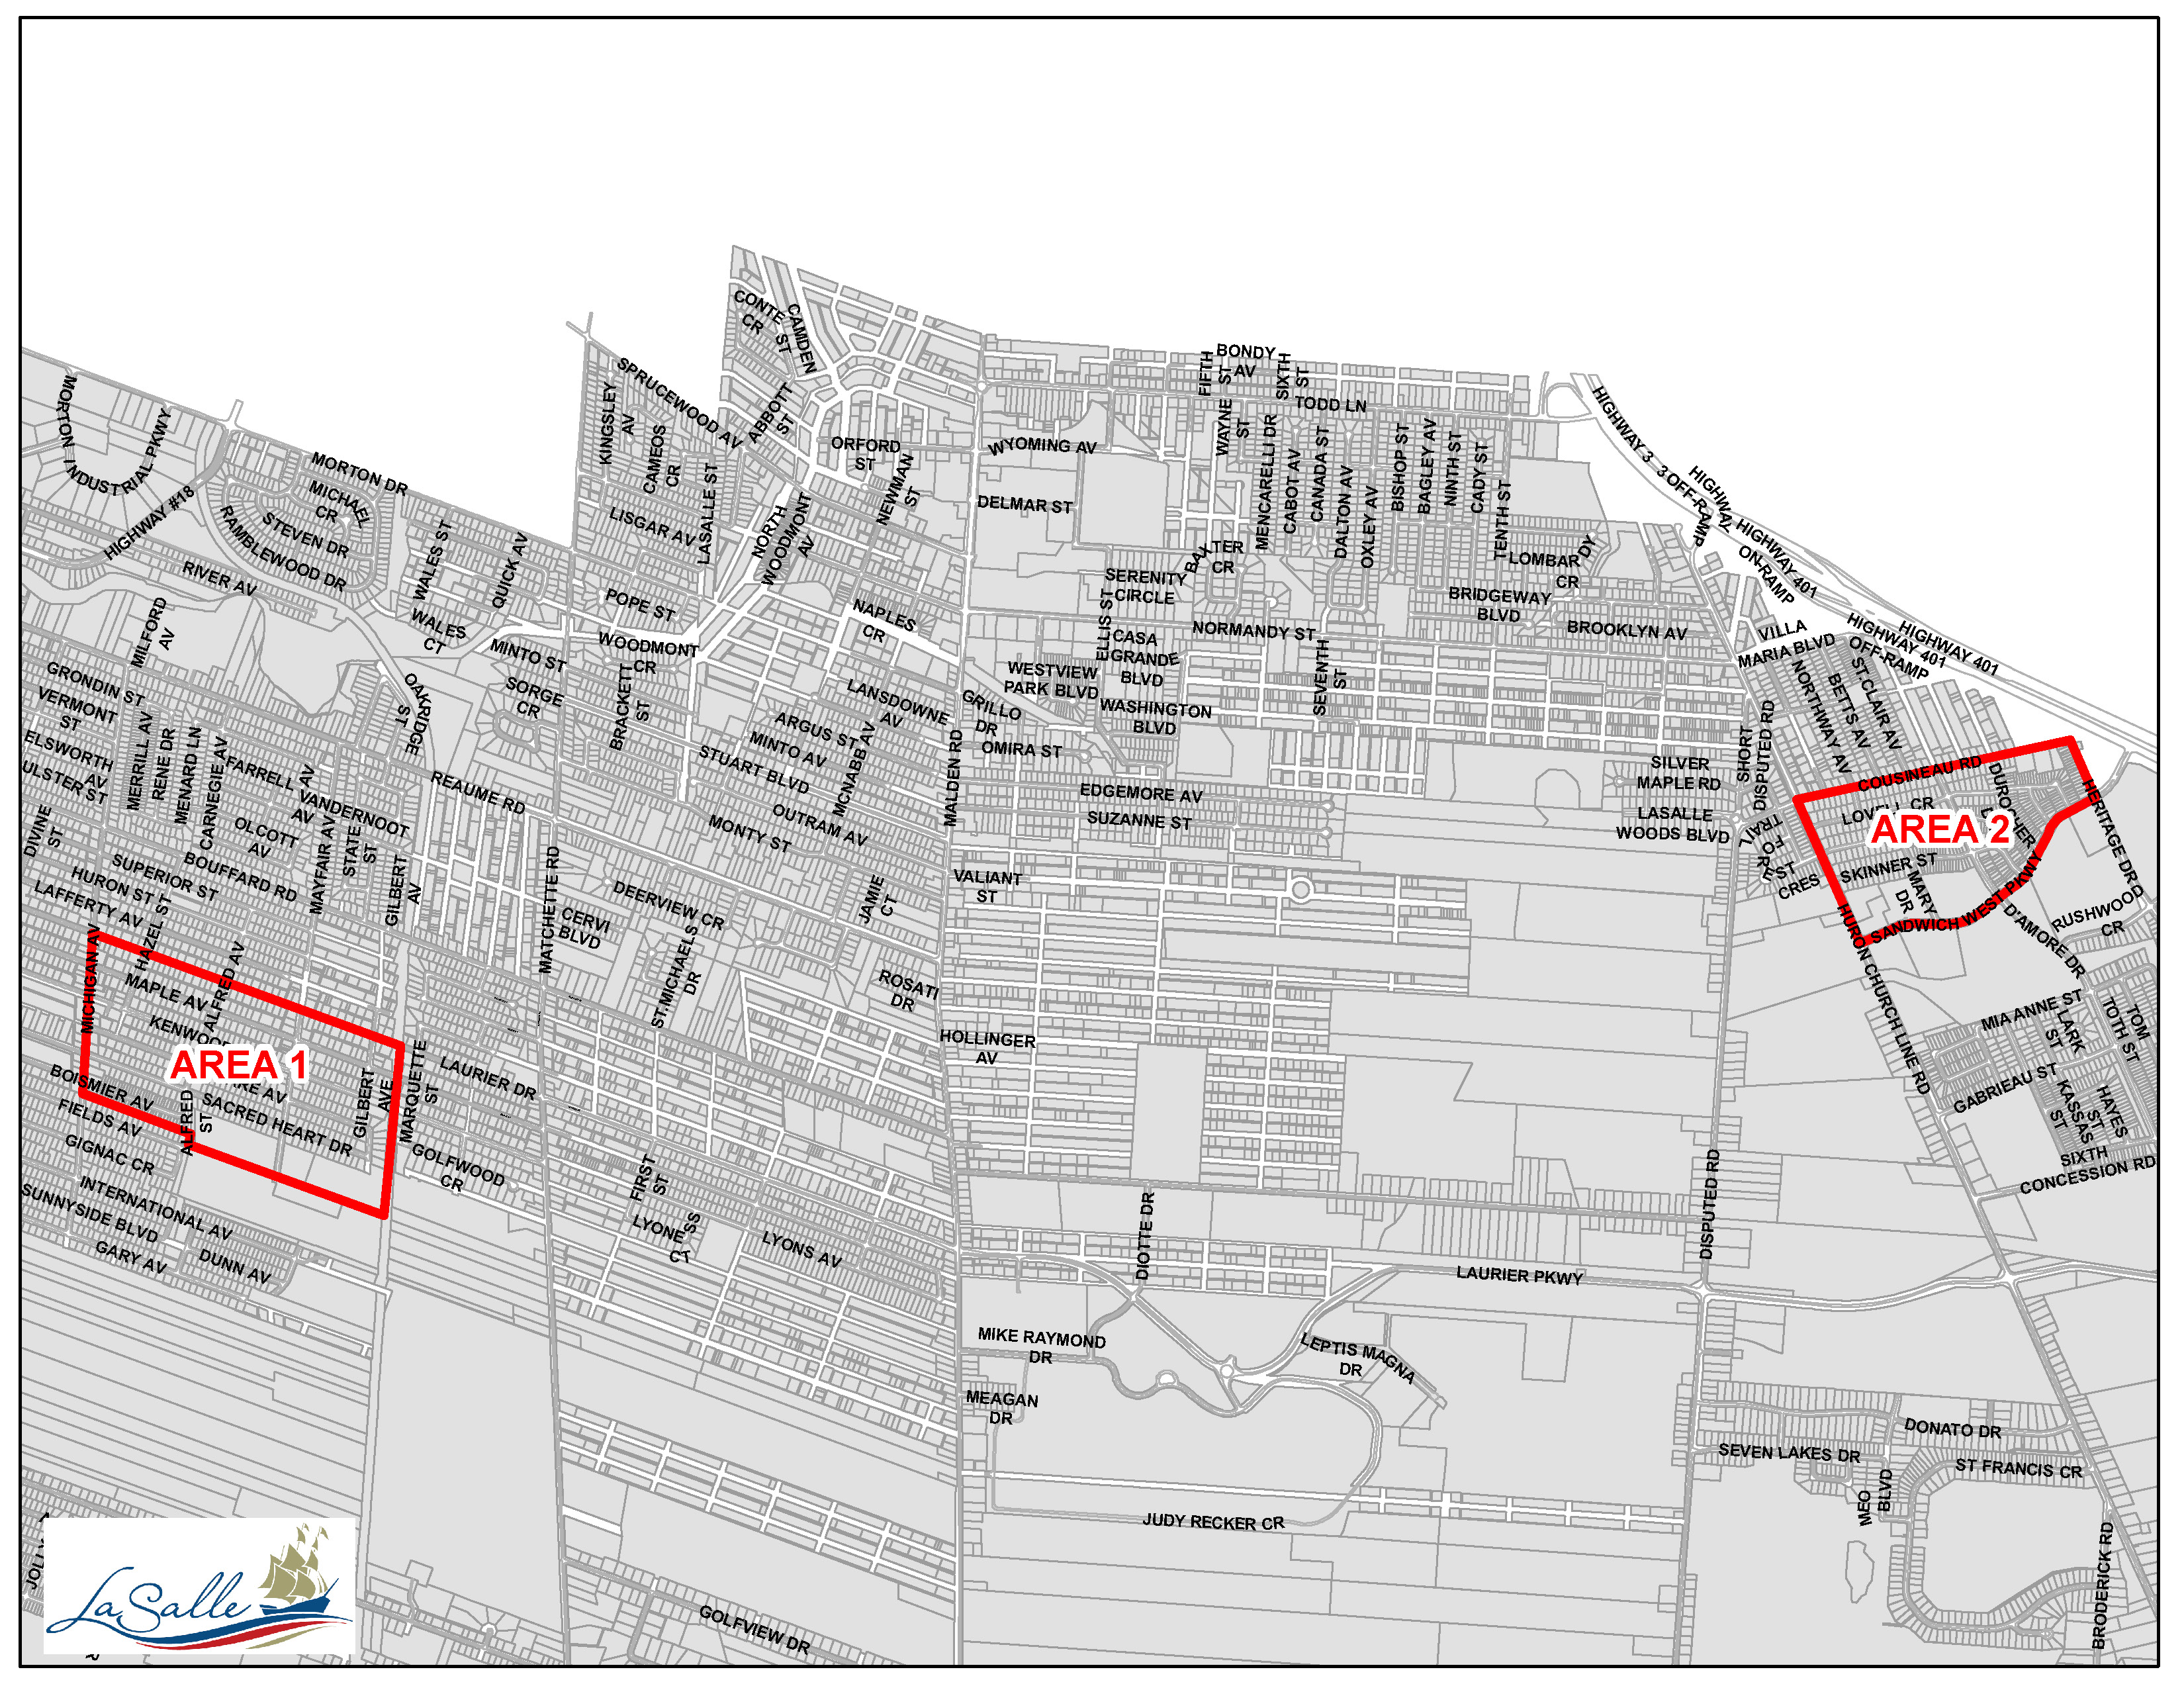 Hydrant Maintenance Map - Areas 1 and 2